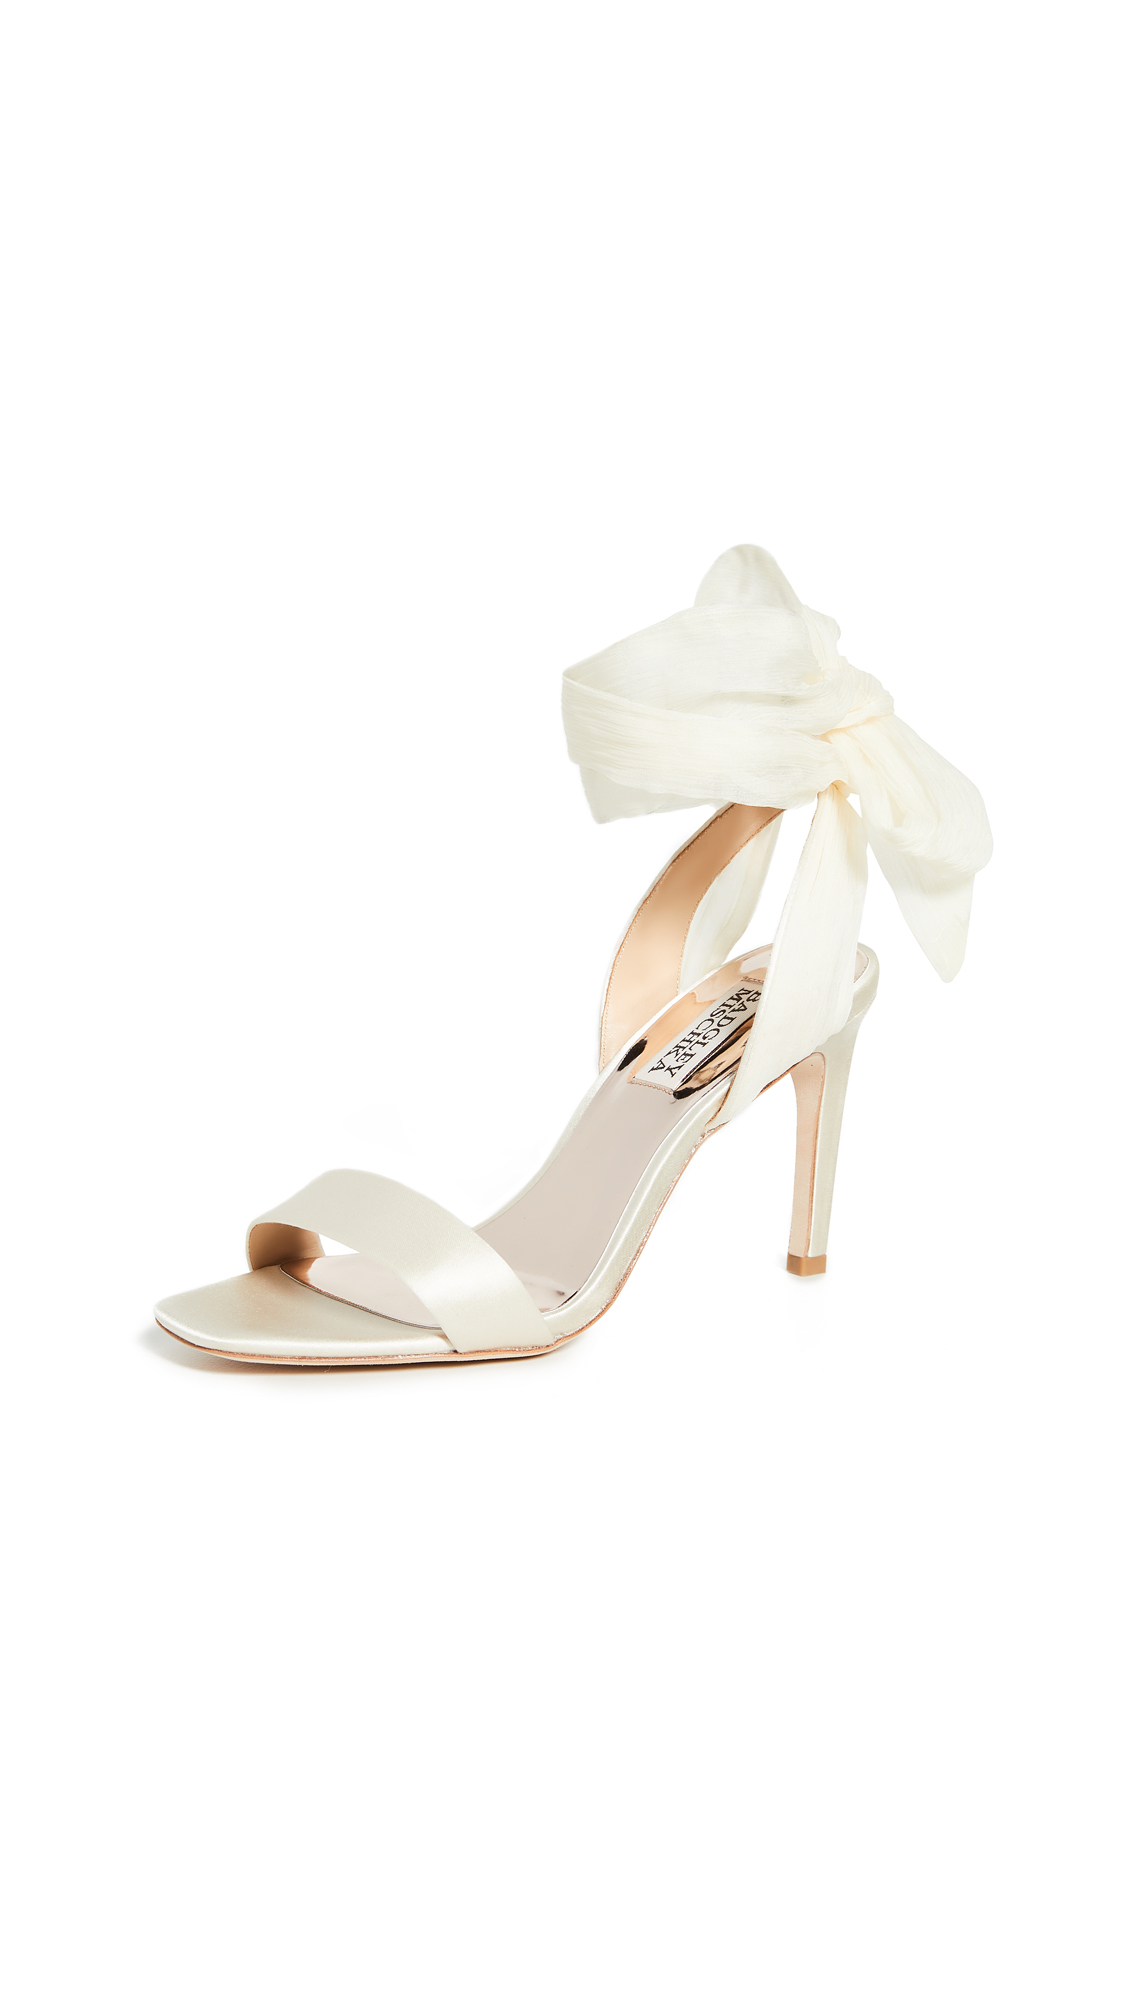 Badgley Mischka Joylyn Sandals - 30% Off Sale